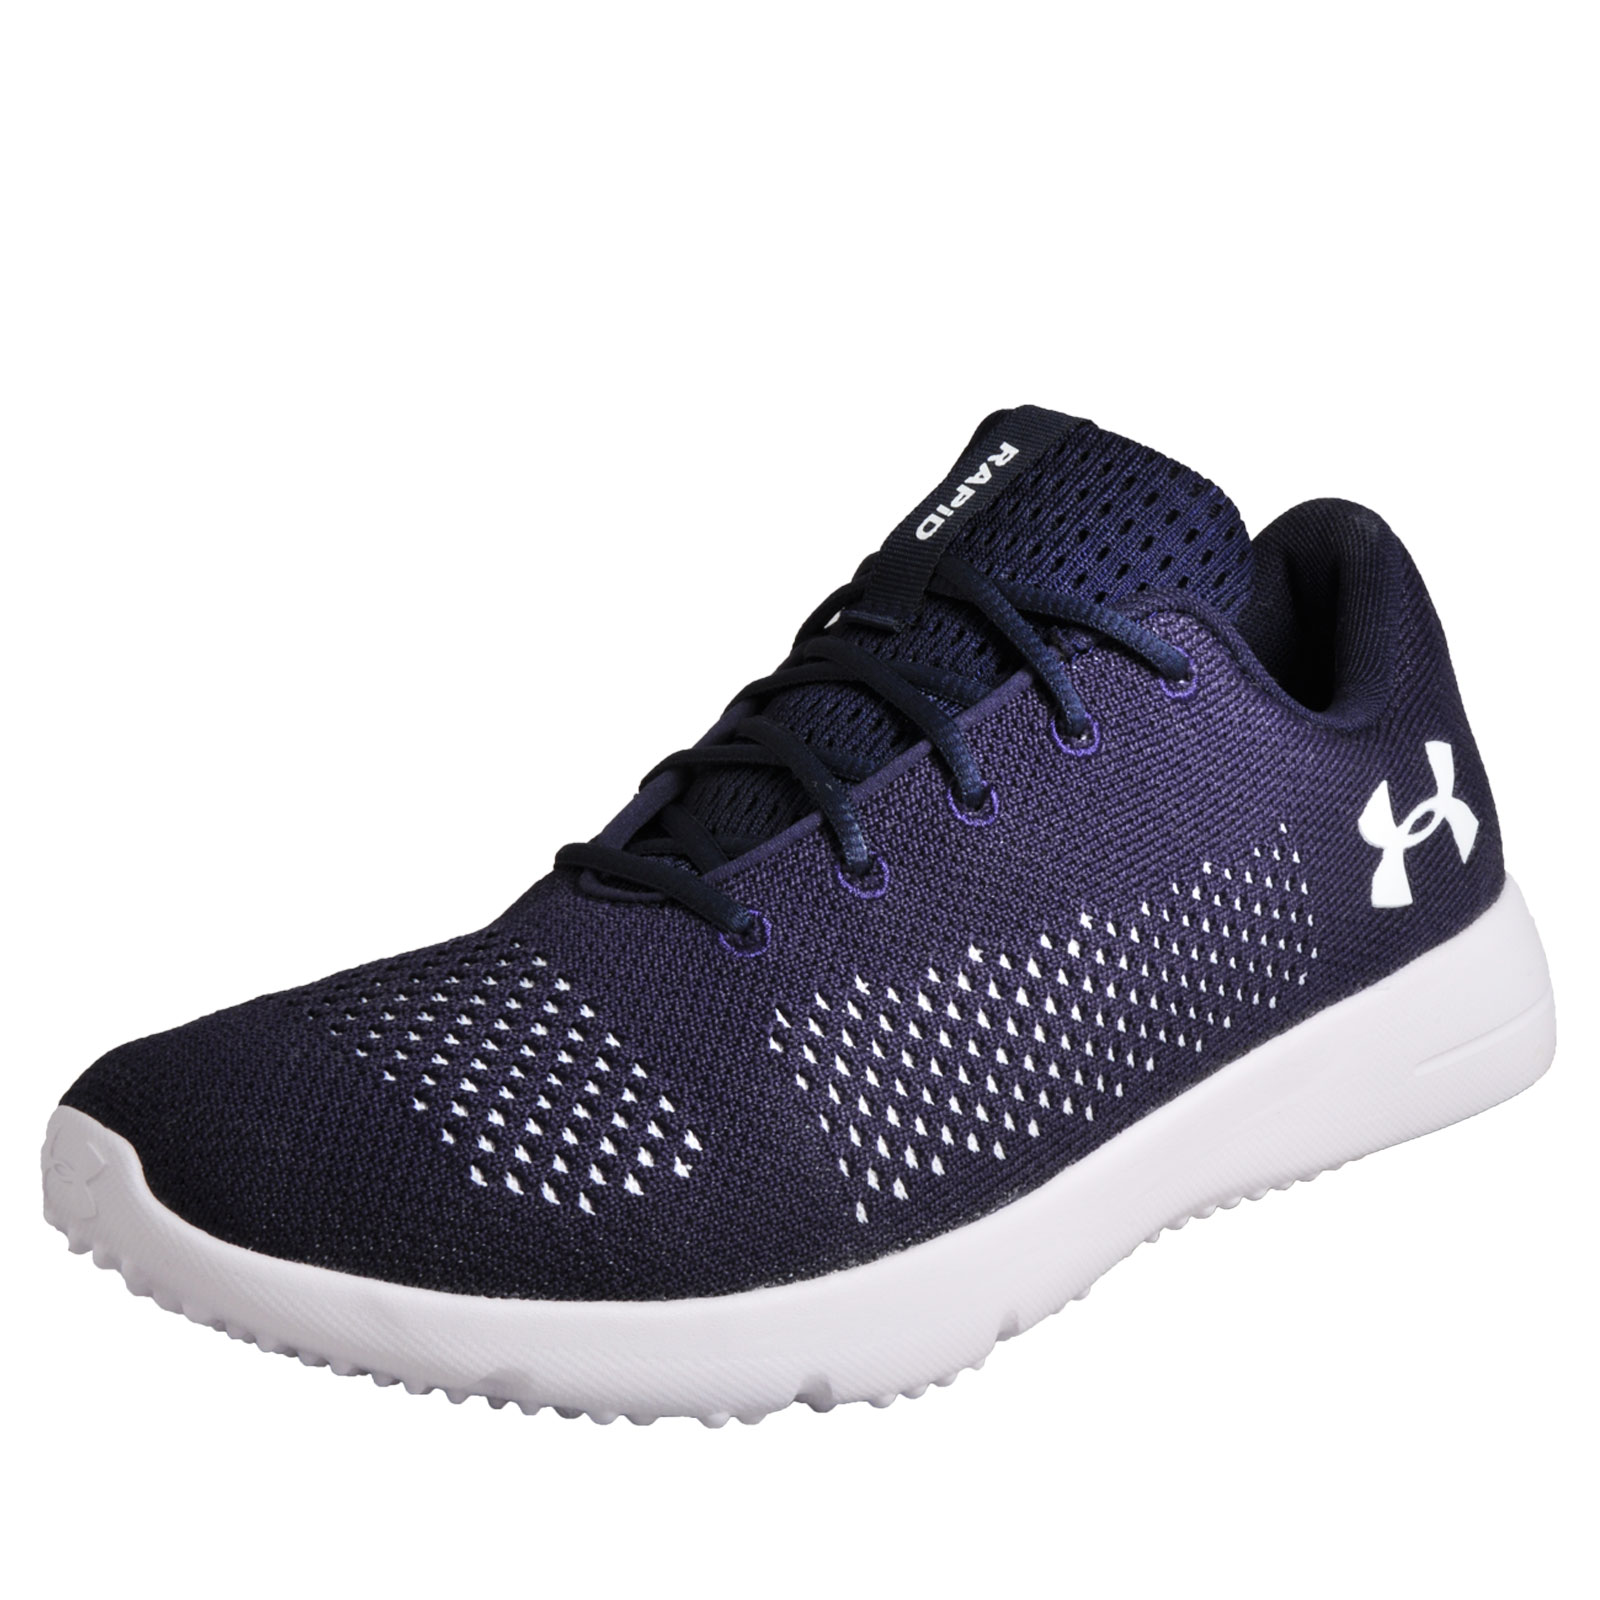 4029551b2ea644 Details about Under Armour Rapid Mens Running Shoes Fitness Gym Workout  Trainers Navy